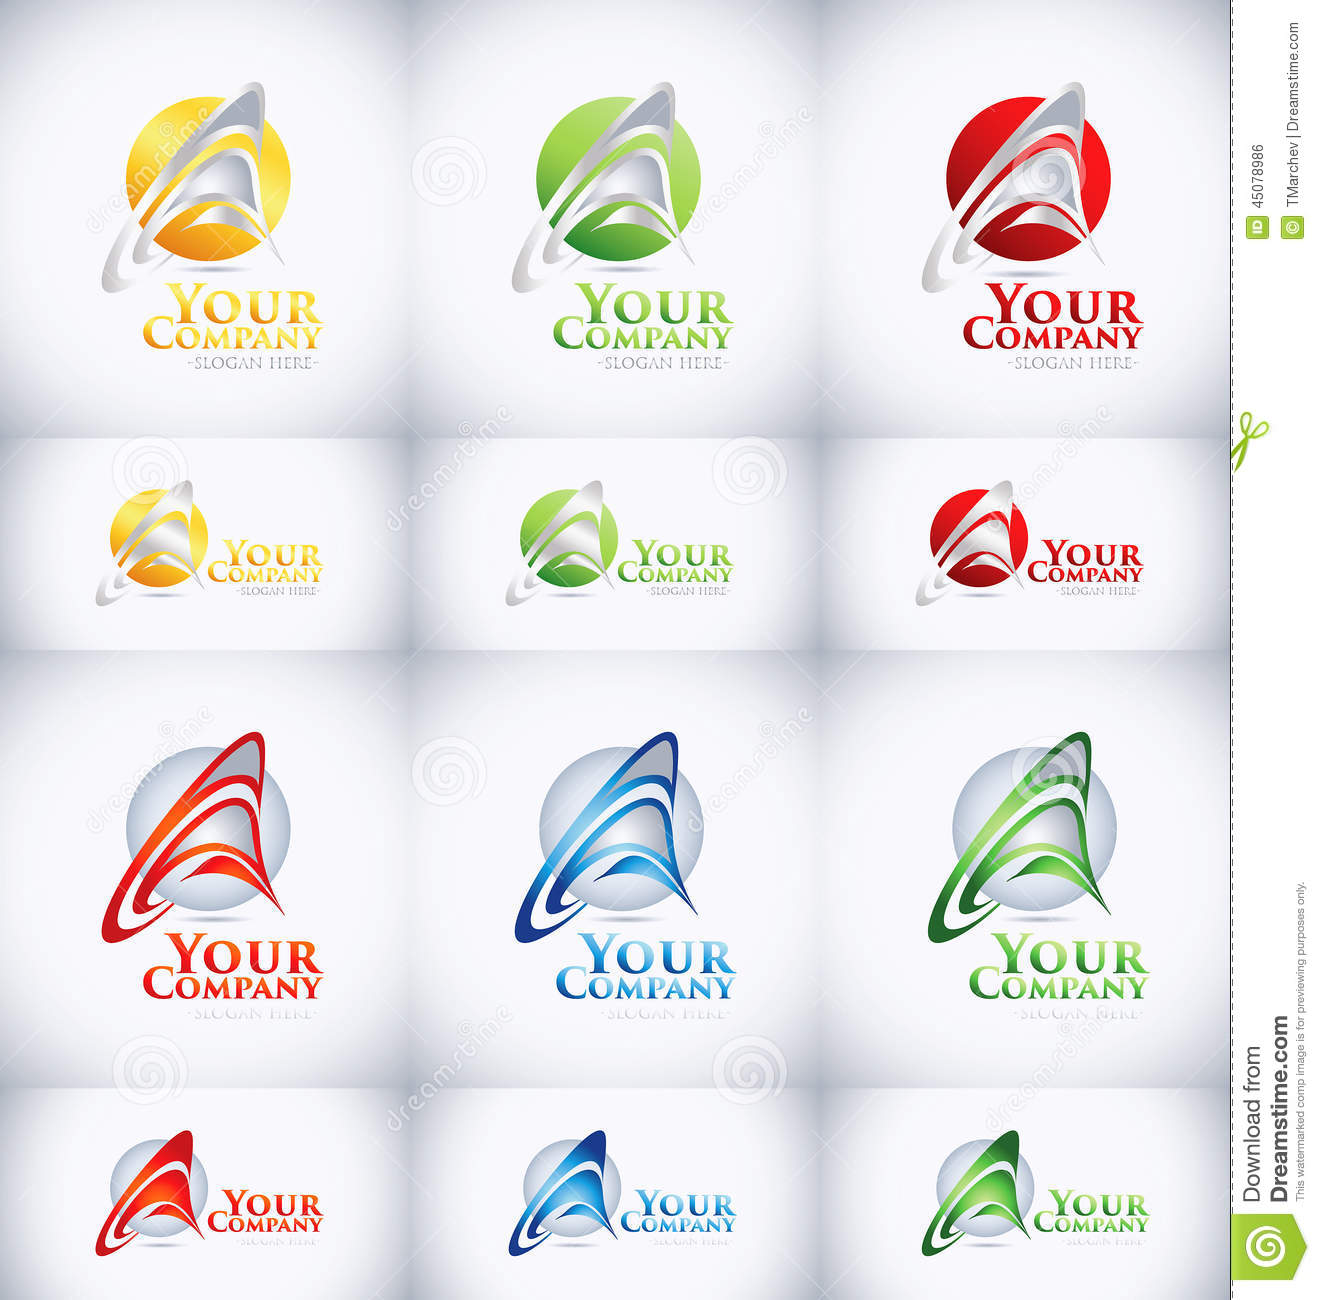 Logo Design In Many Color Combinations